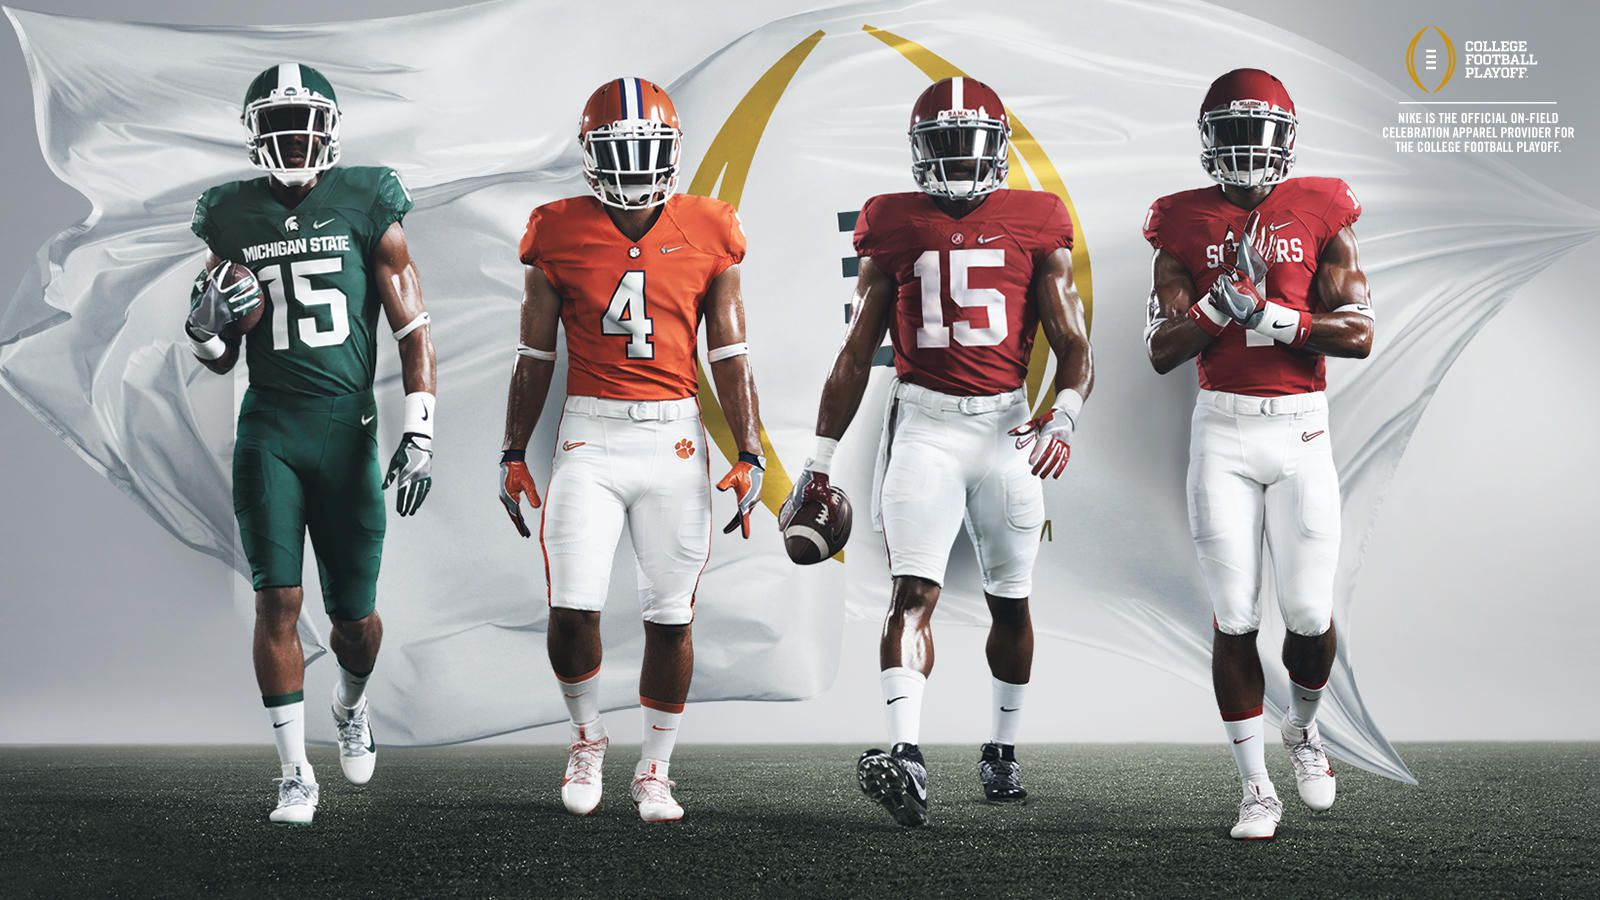 Nike Reveals All 4 Teams In 2015 College Football Playoff